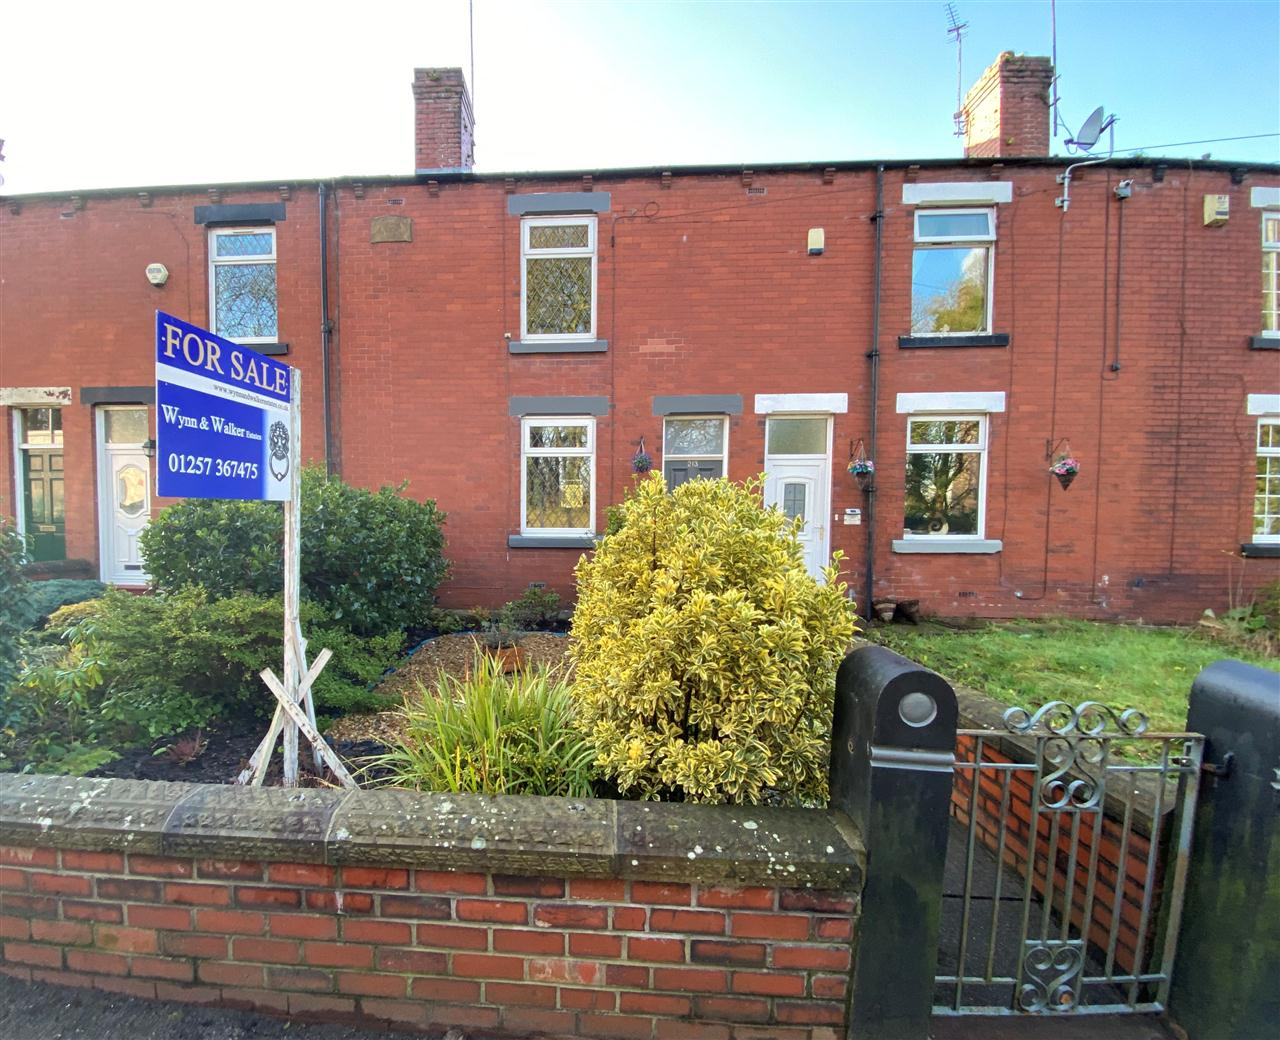 2 bed terraced for sale in Chorley Road, Adlington, BL6